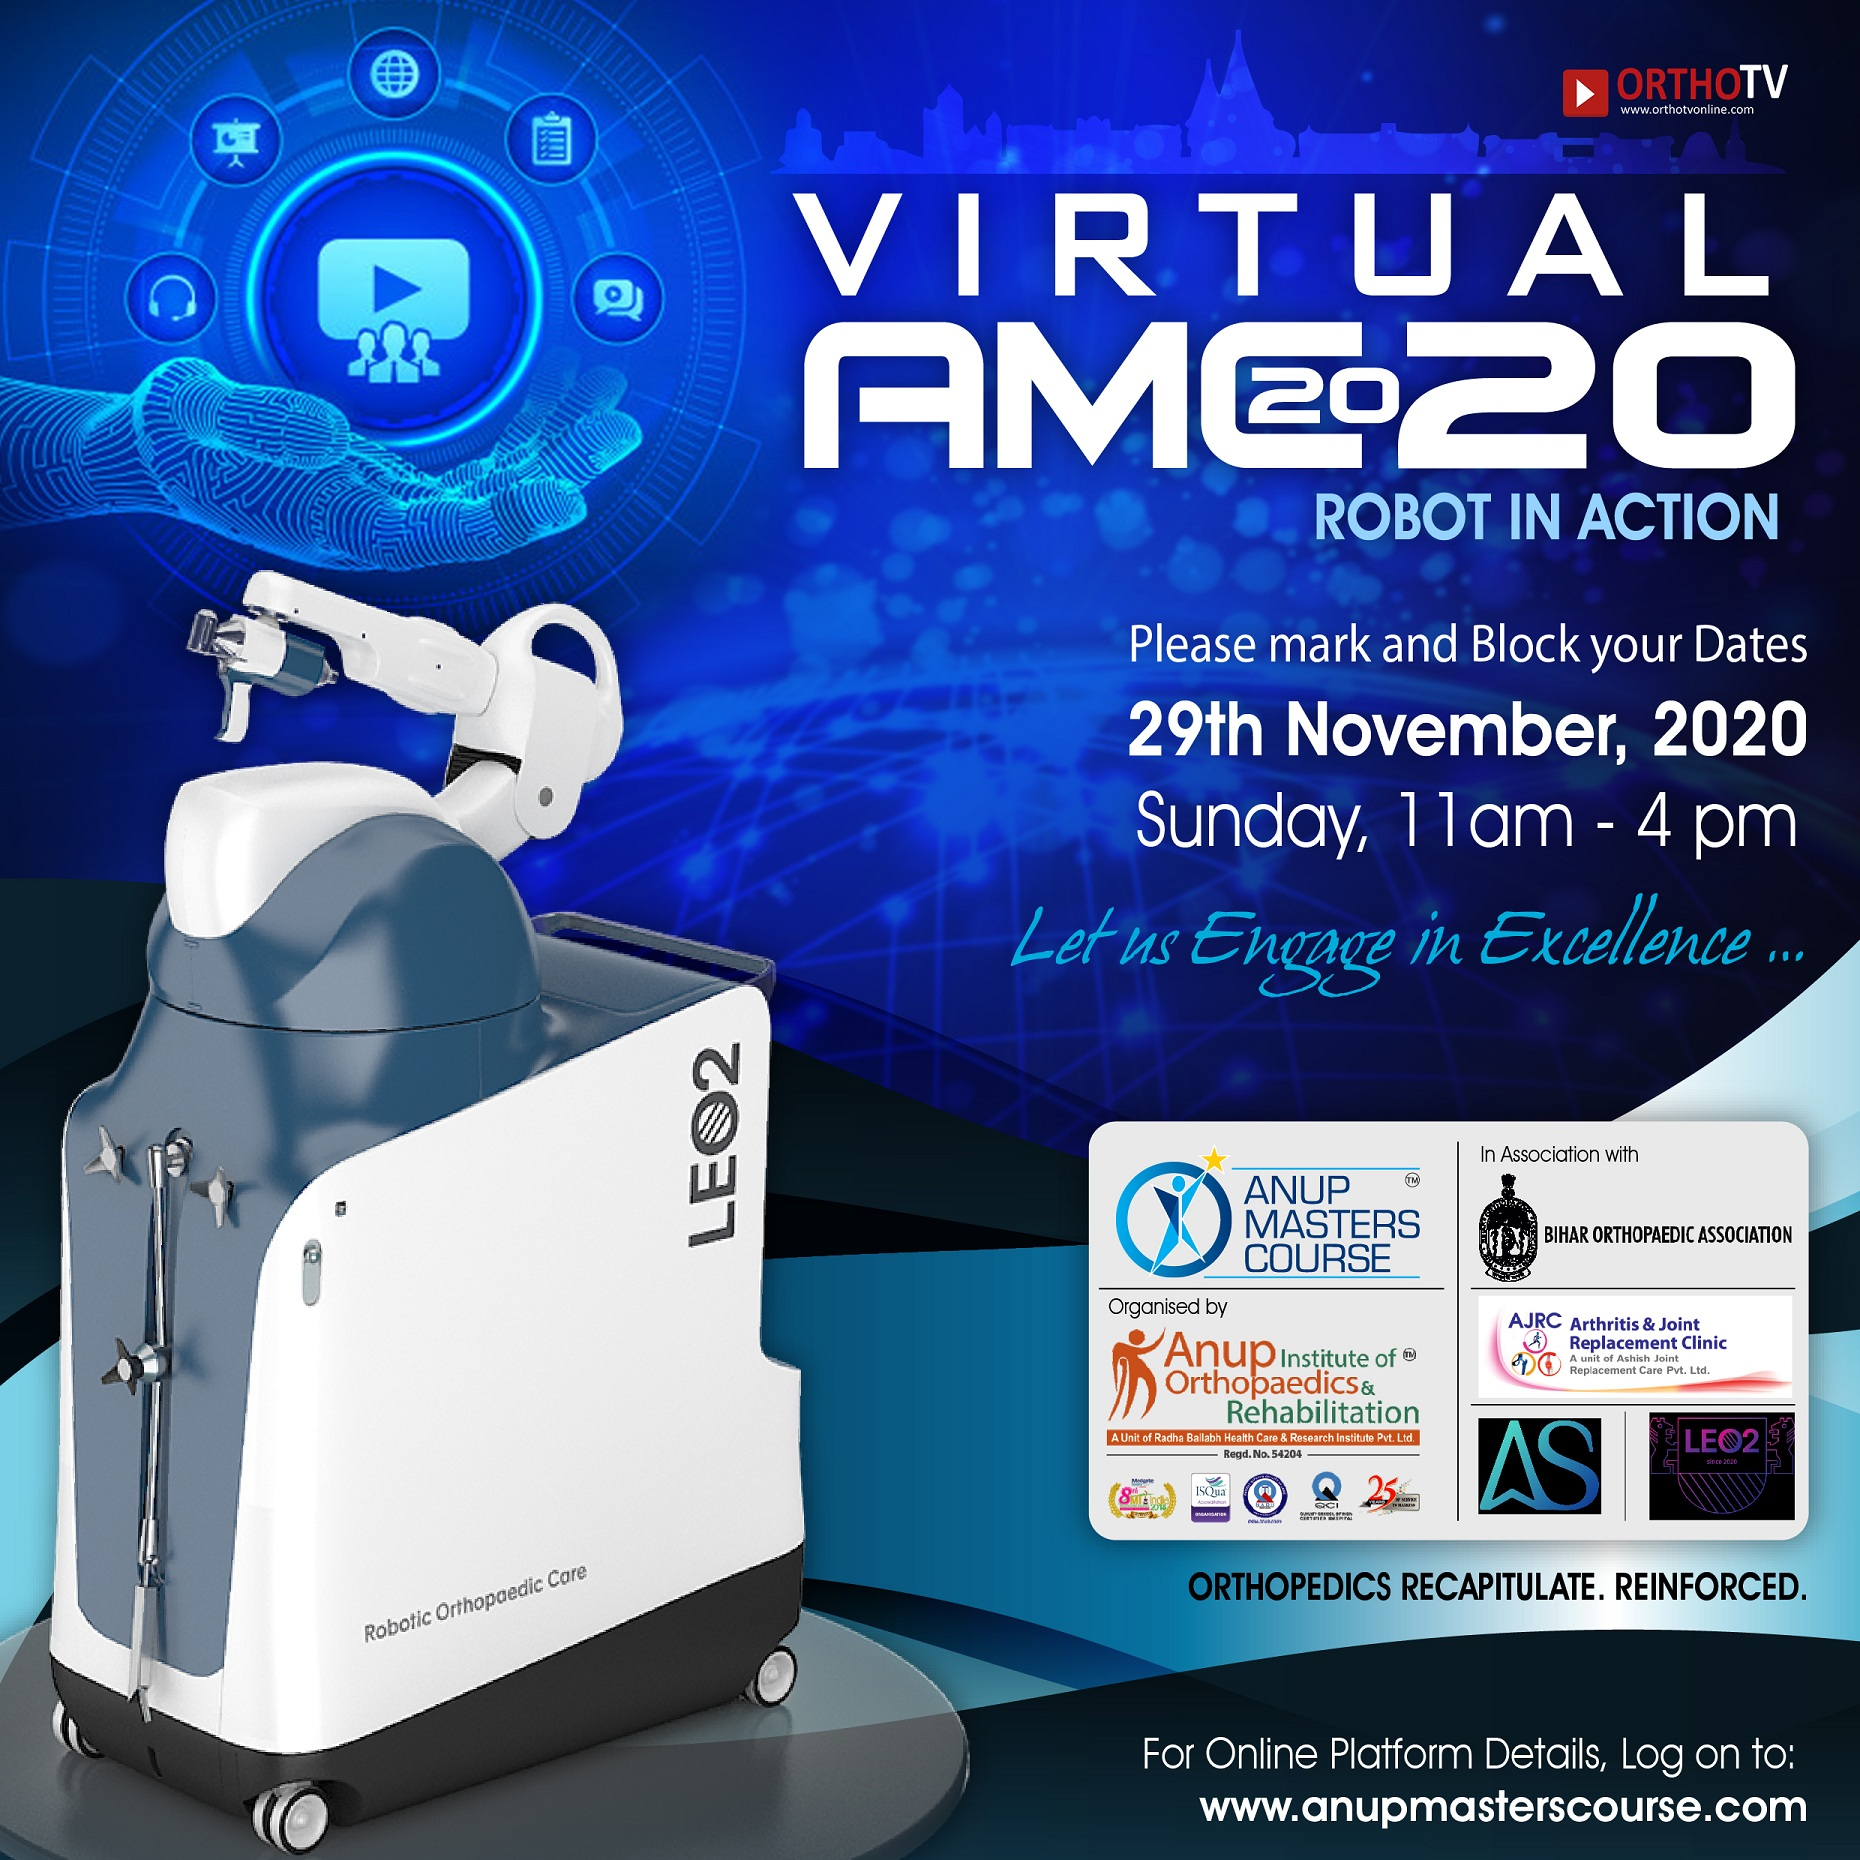 - amc2020 flyer square - Anup Masters Course 2020: ROBOT IN ACTION – Let's Engage in Excellence